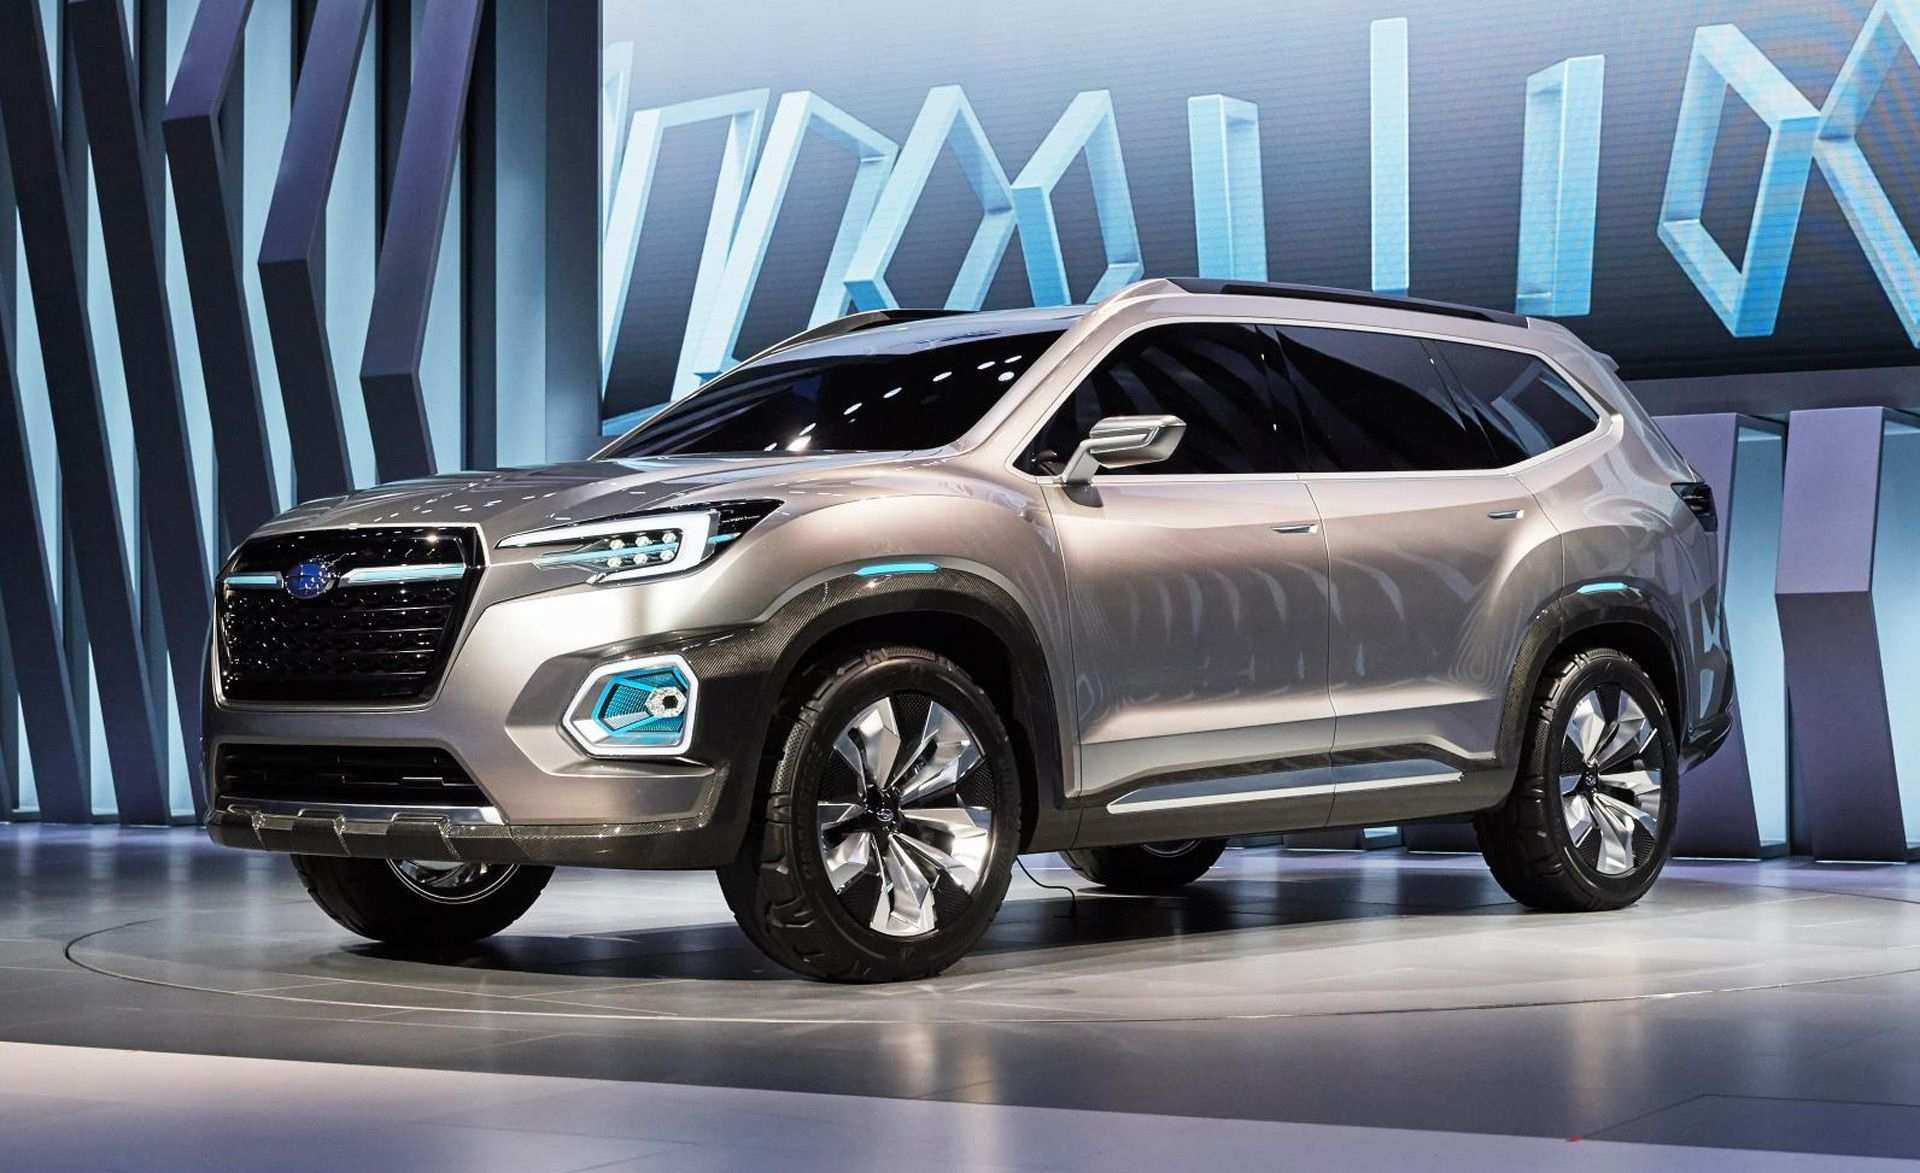 48 The 2019 Subaru Viziv Pickup Overview for 2019 Subaru Viziv Pickup